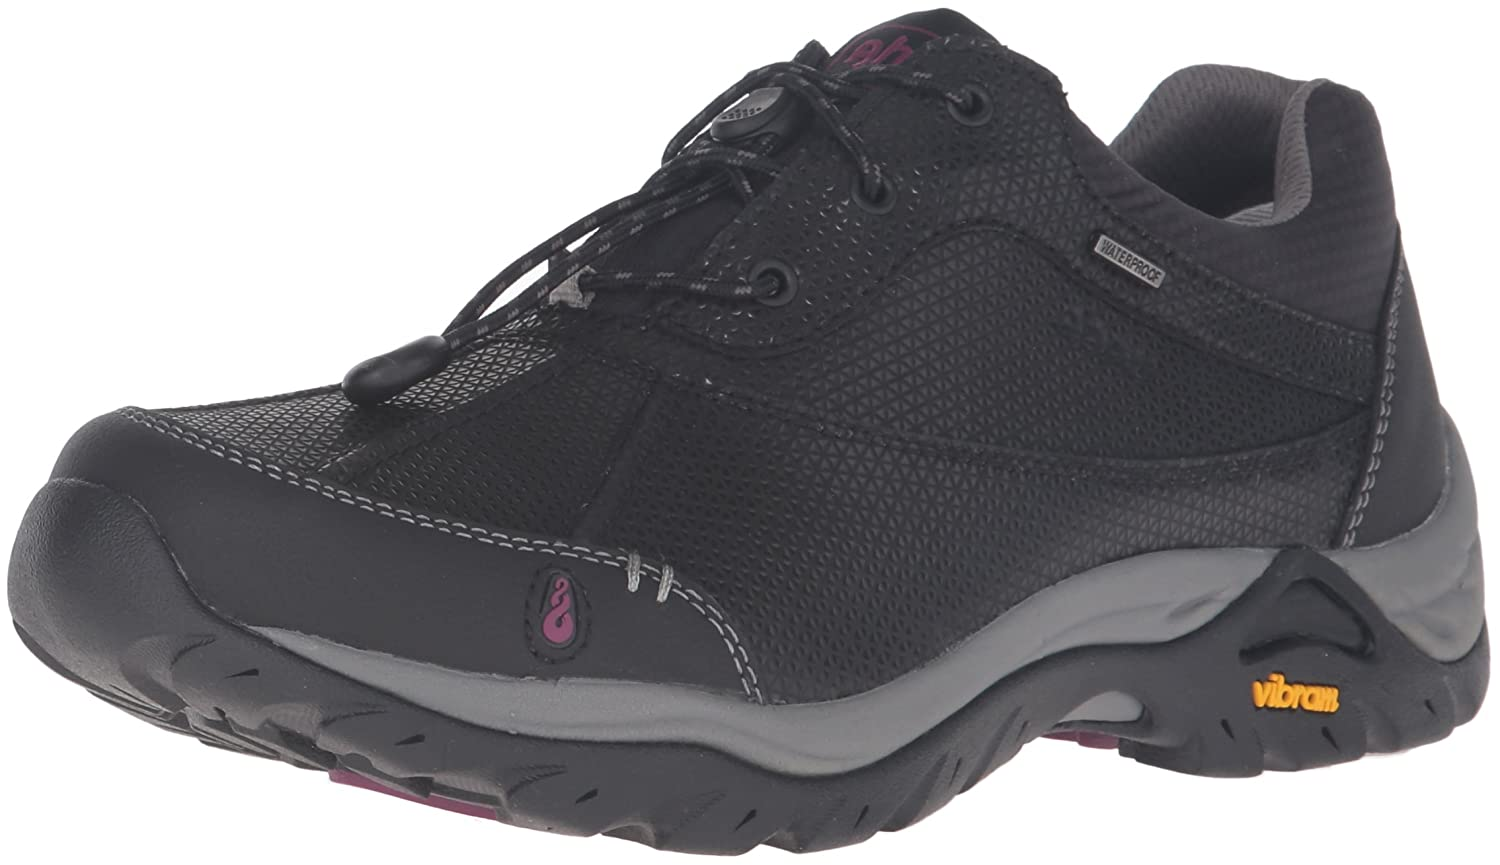 Ahnu Women's Calaveras WP Hiking Shoe